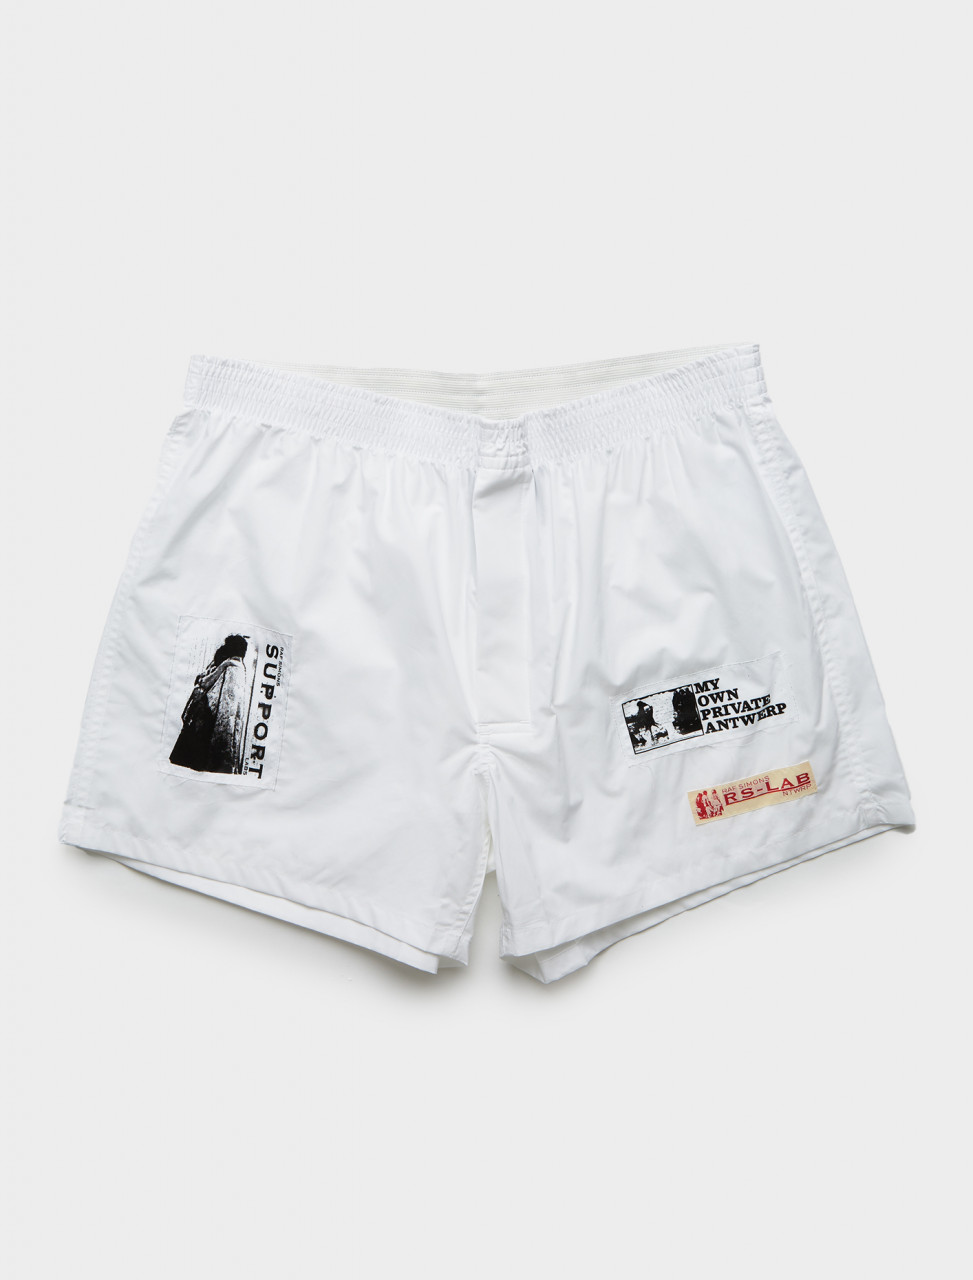 Raf Simons Boxershorts with Patches in White Front